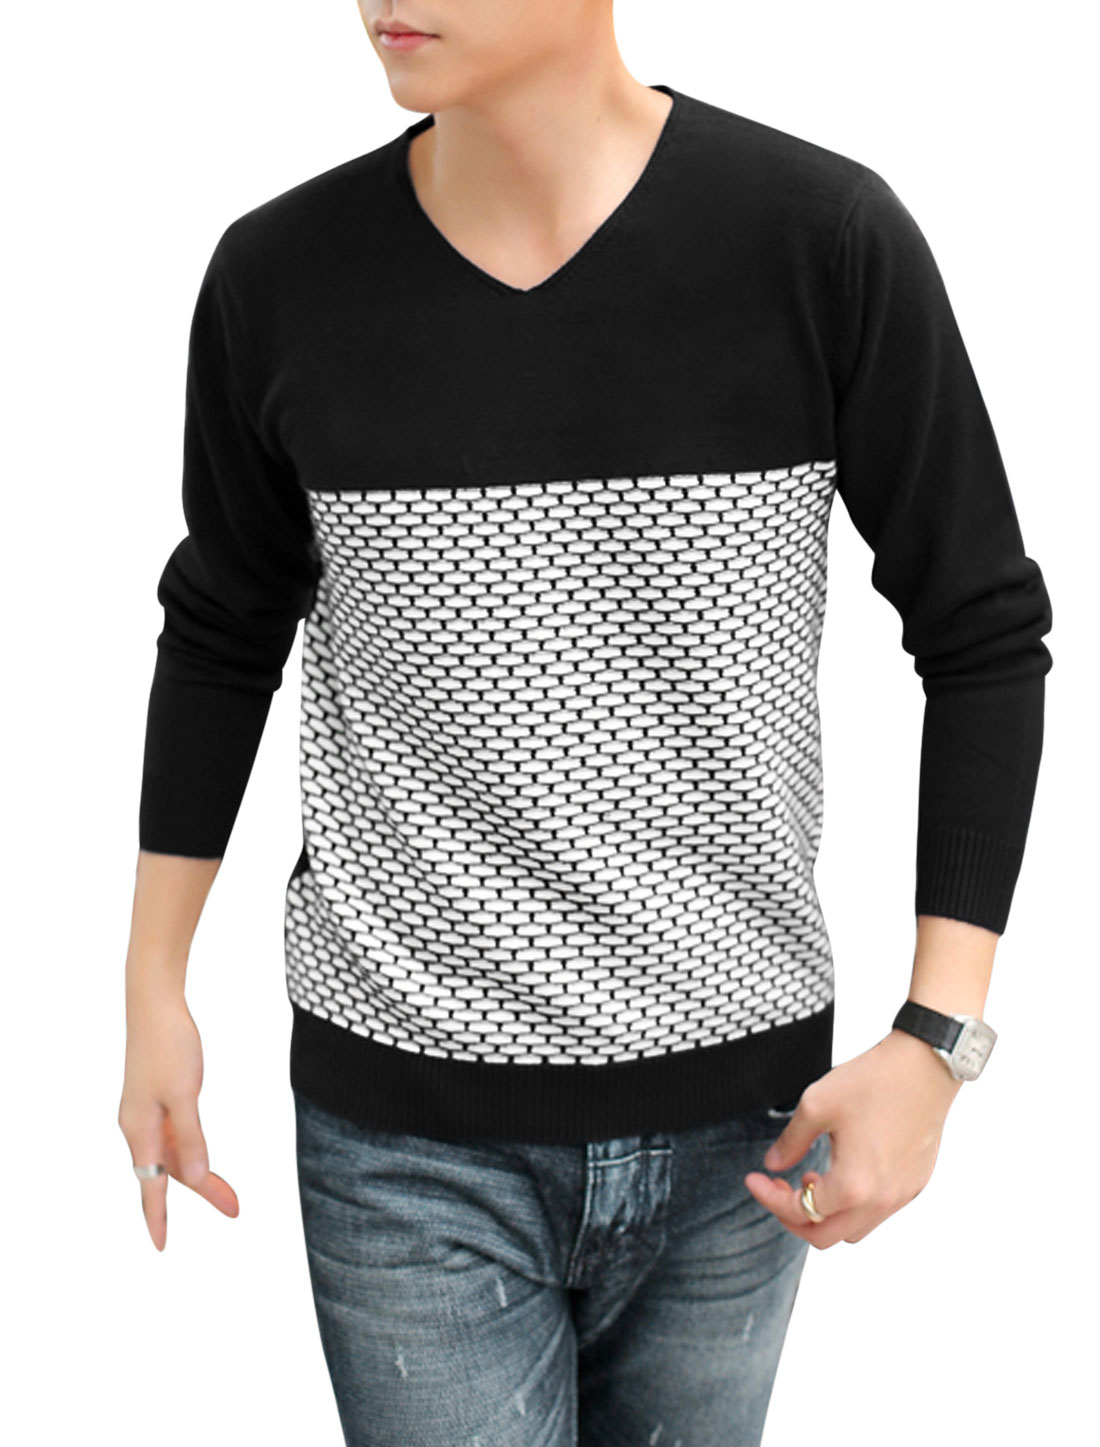 Men V Neckline Contrast Color Long Sleeves NEW Knitted Top Black White